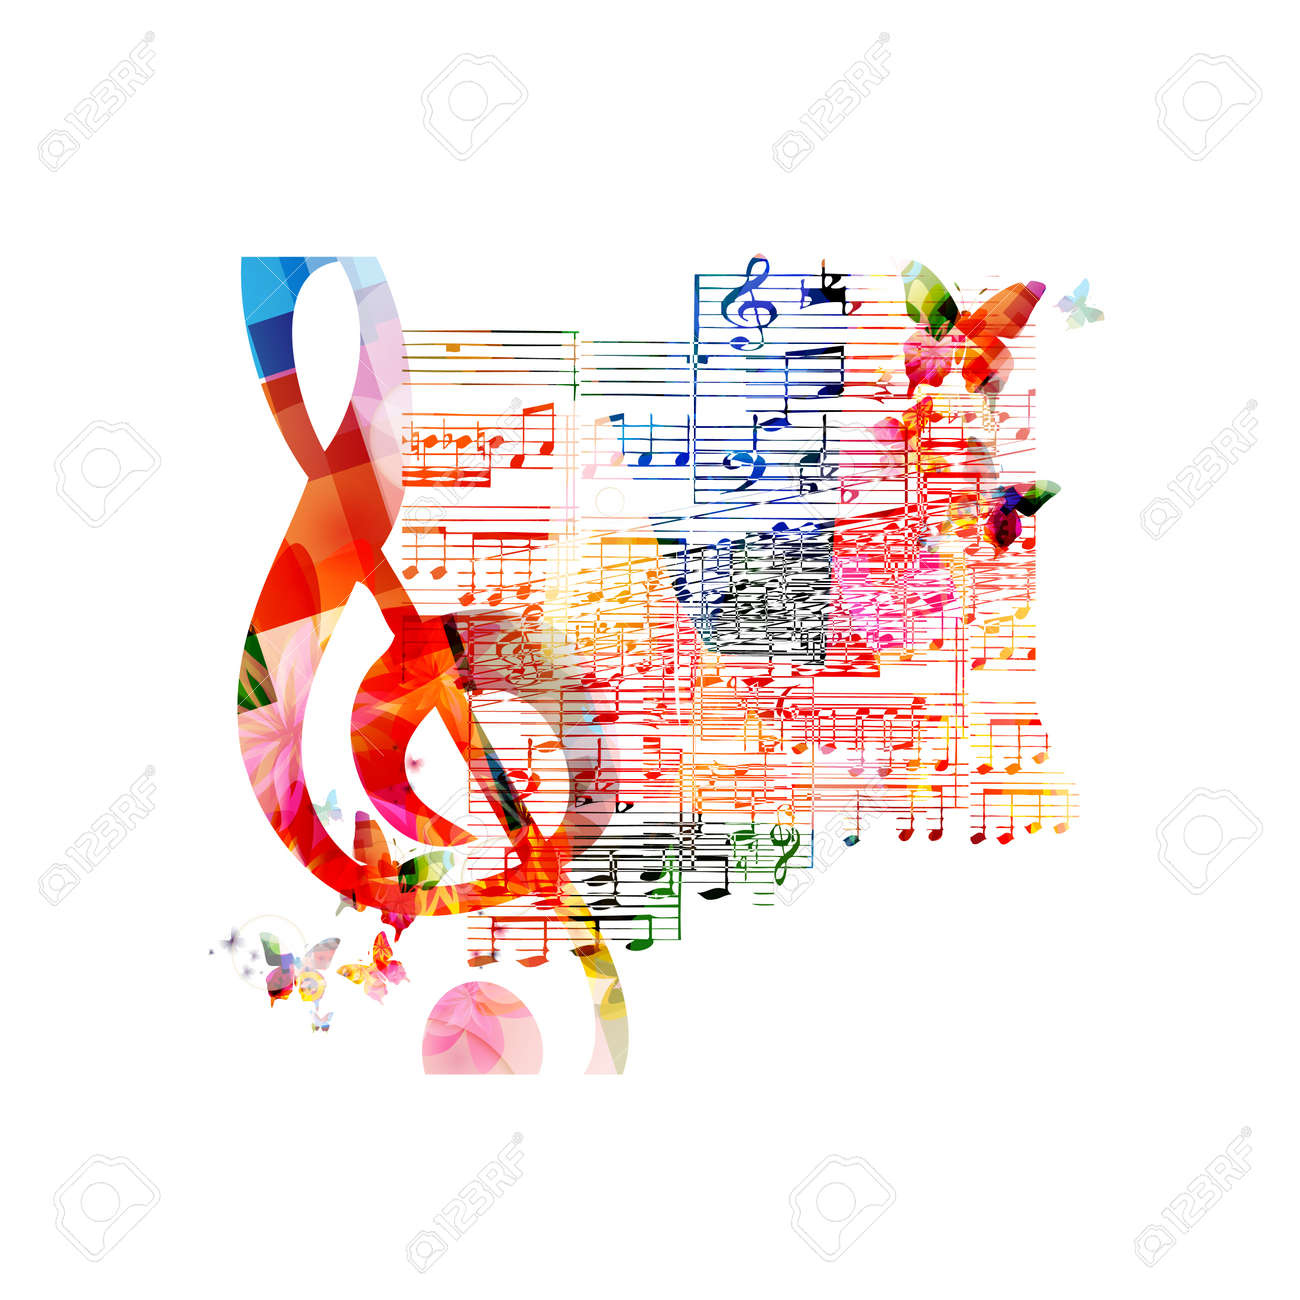 Colorful musical background - 38116637